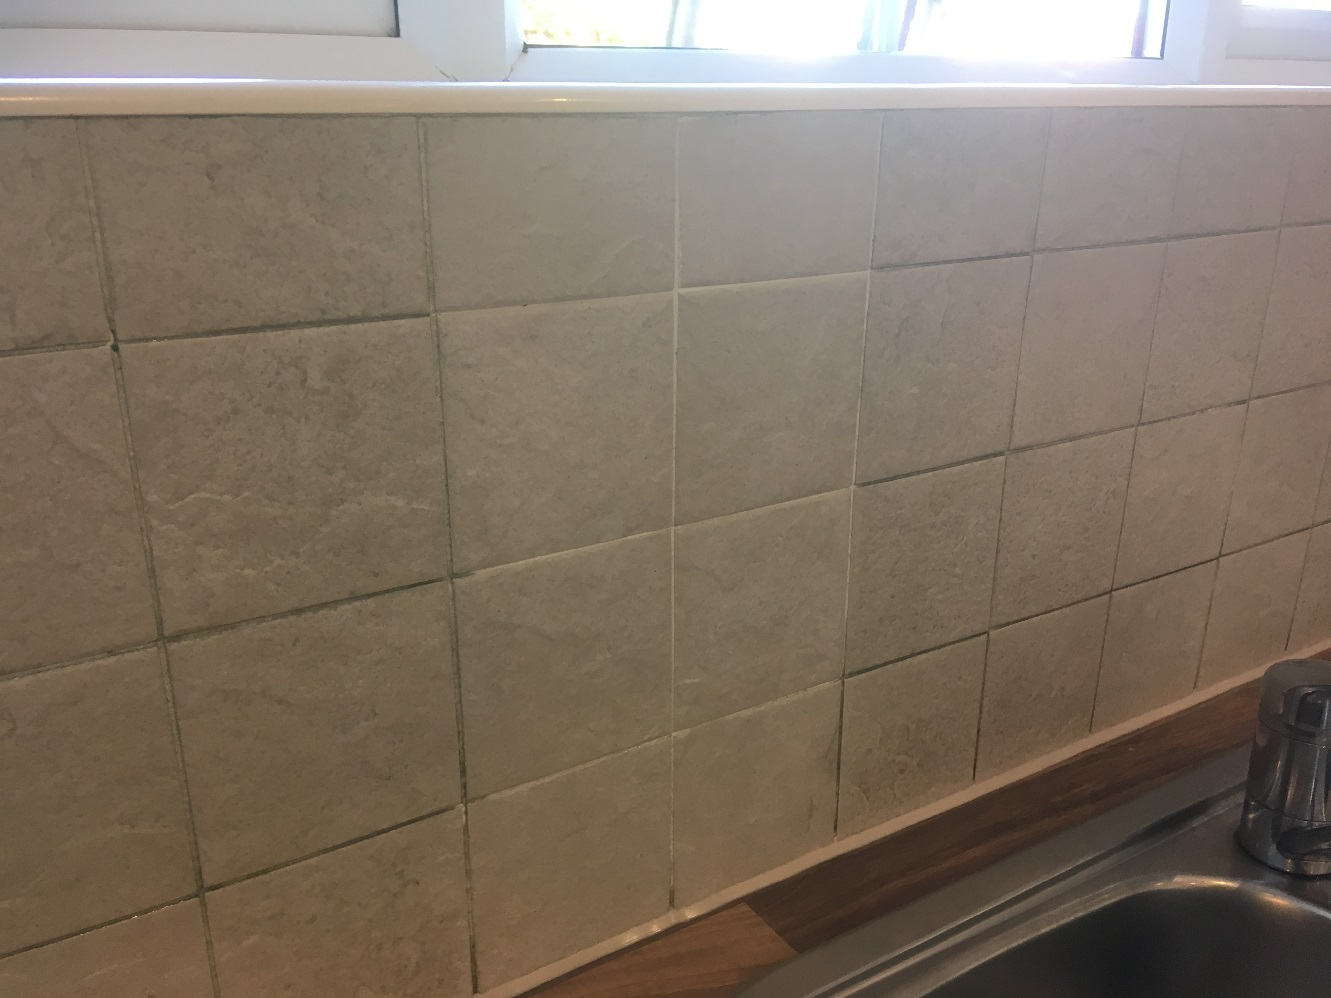 Ceramic Wall Tile Grout During Test Clean Chorley